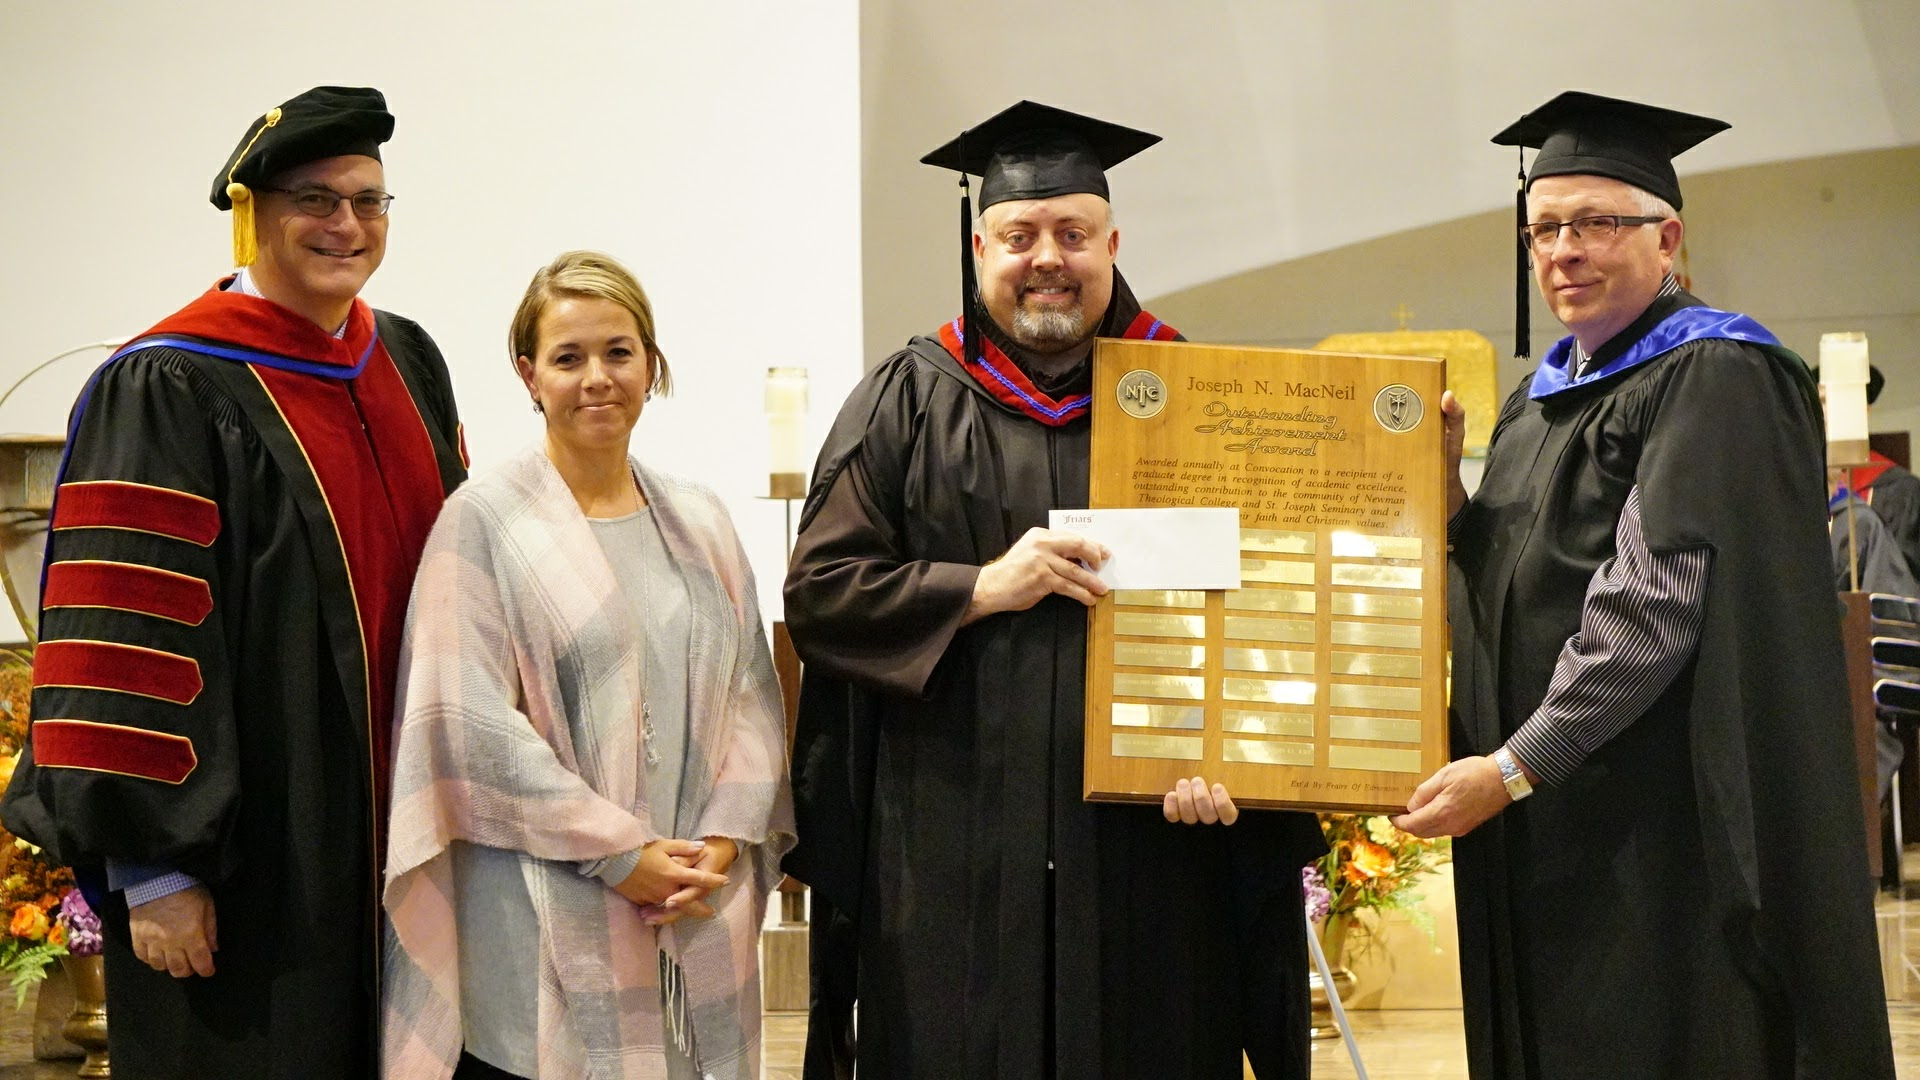 Brother Ben Ripley Receives Archbishop MacNeil Award from Newman Theological College